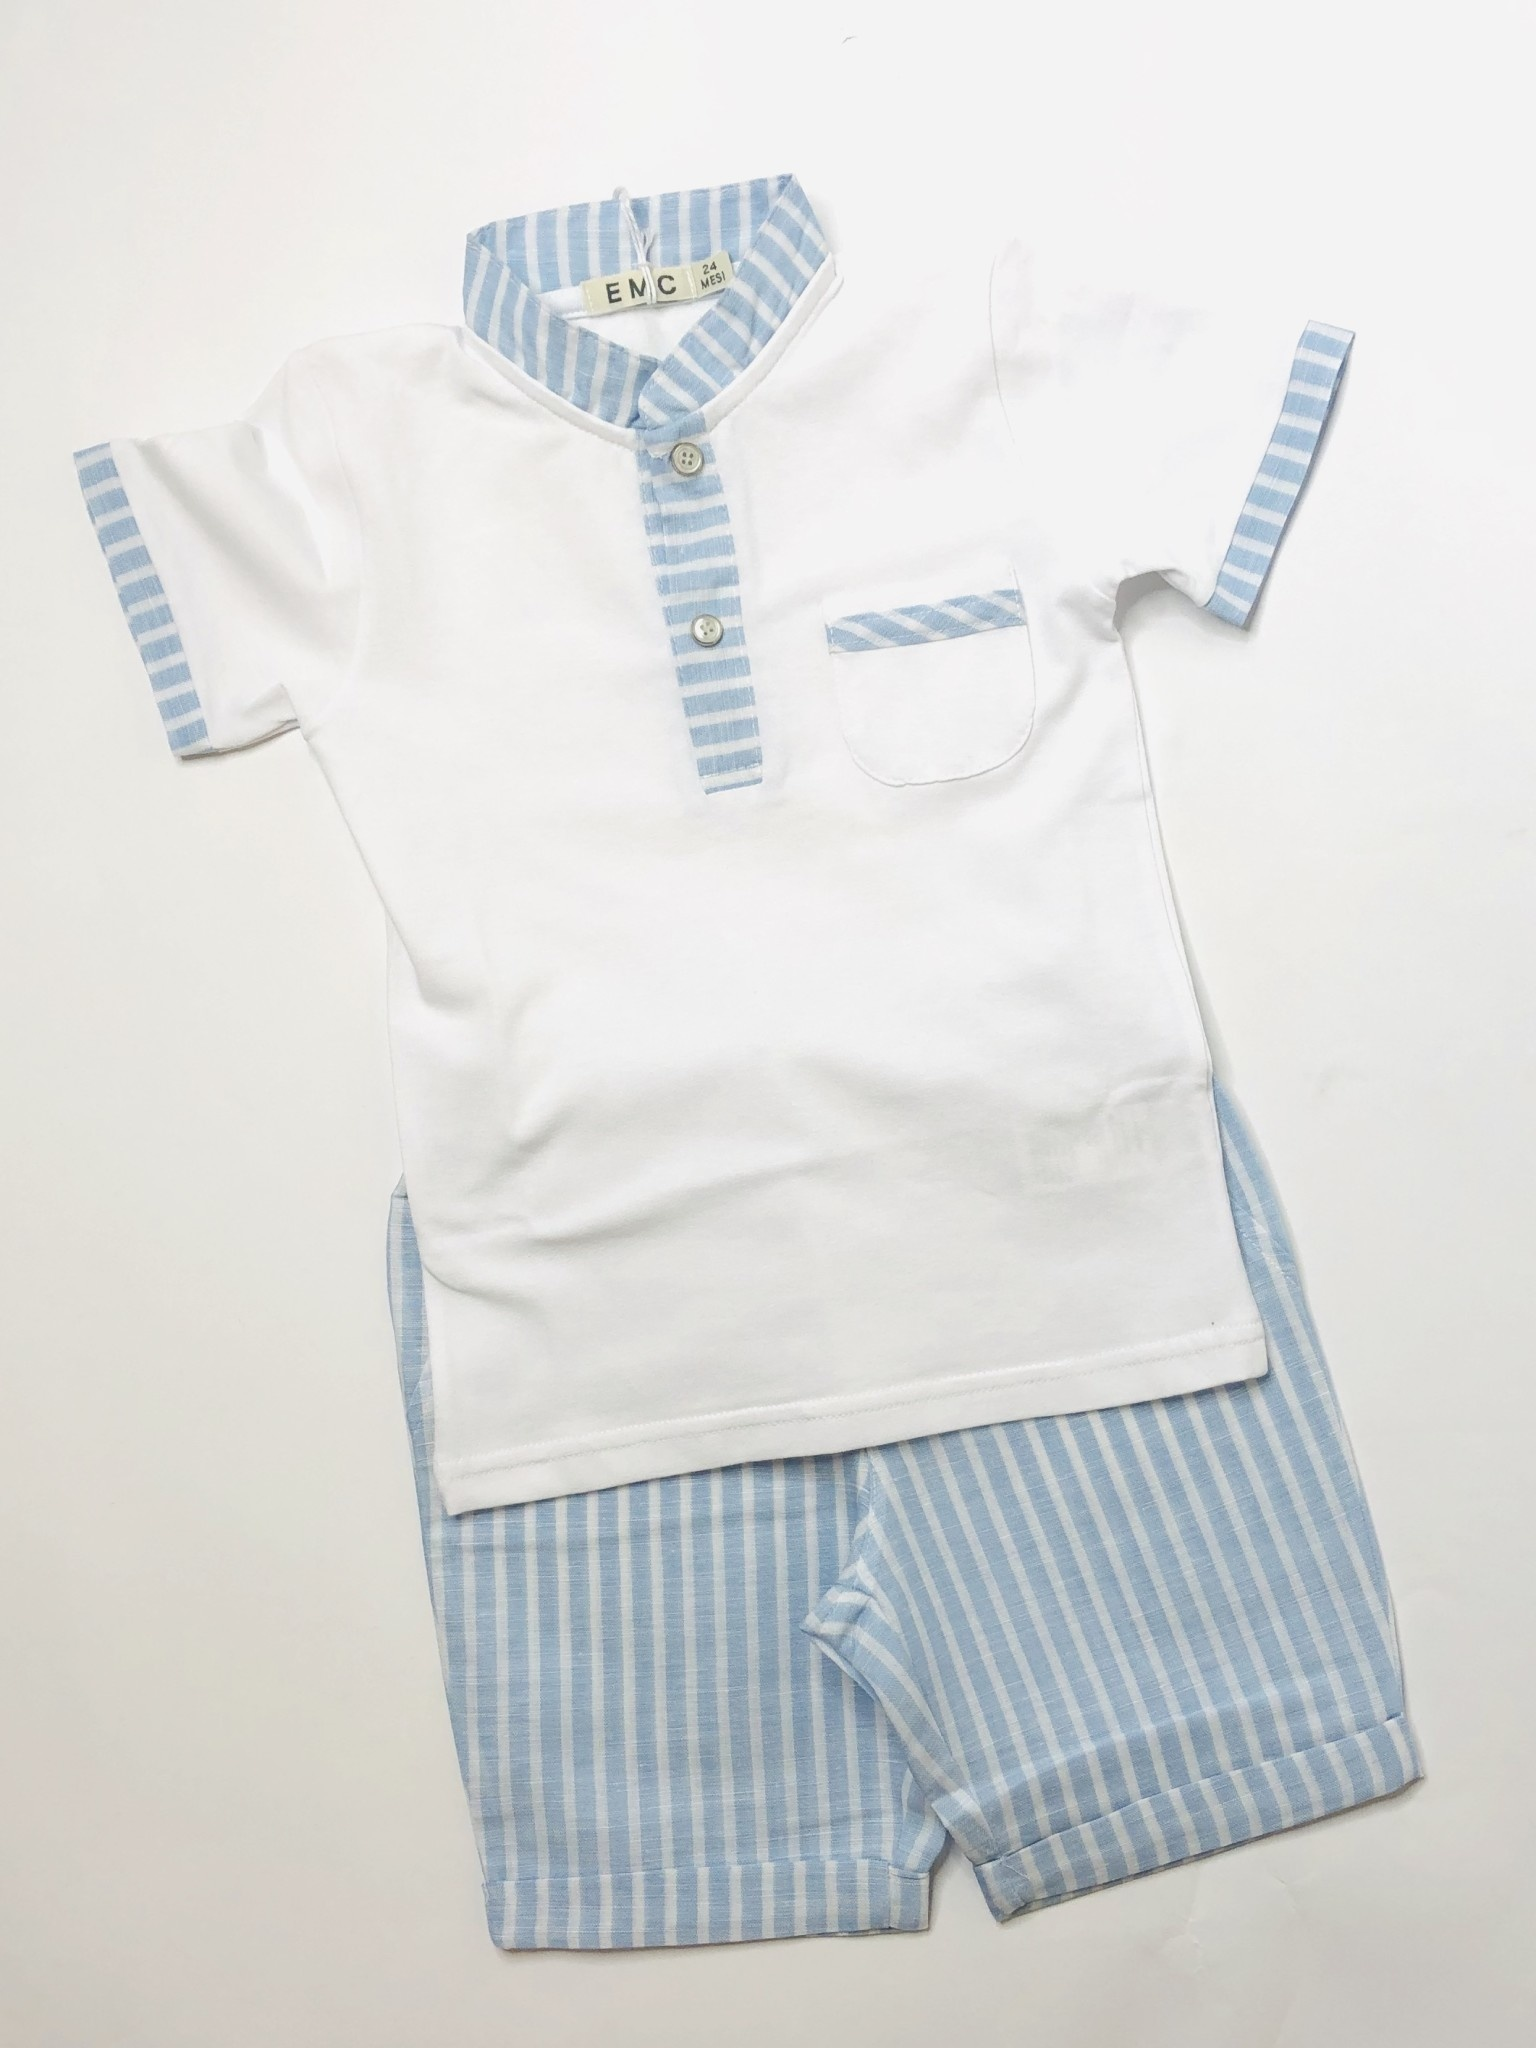 EMC EMC Mandrin Stripe Collar & Stripe Shorts Set